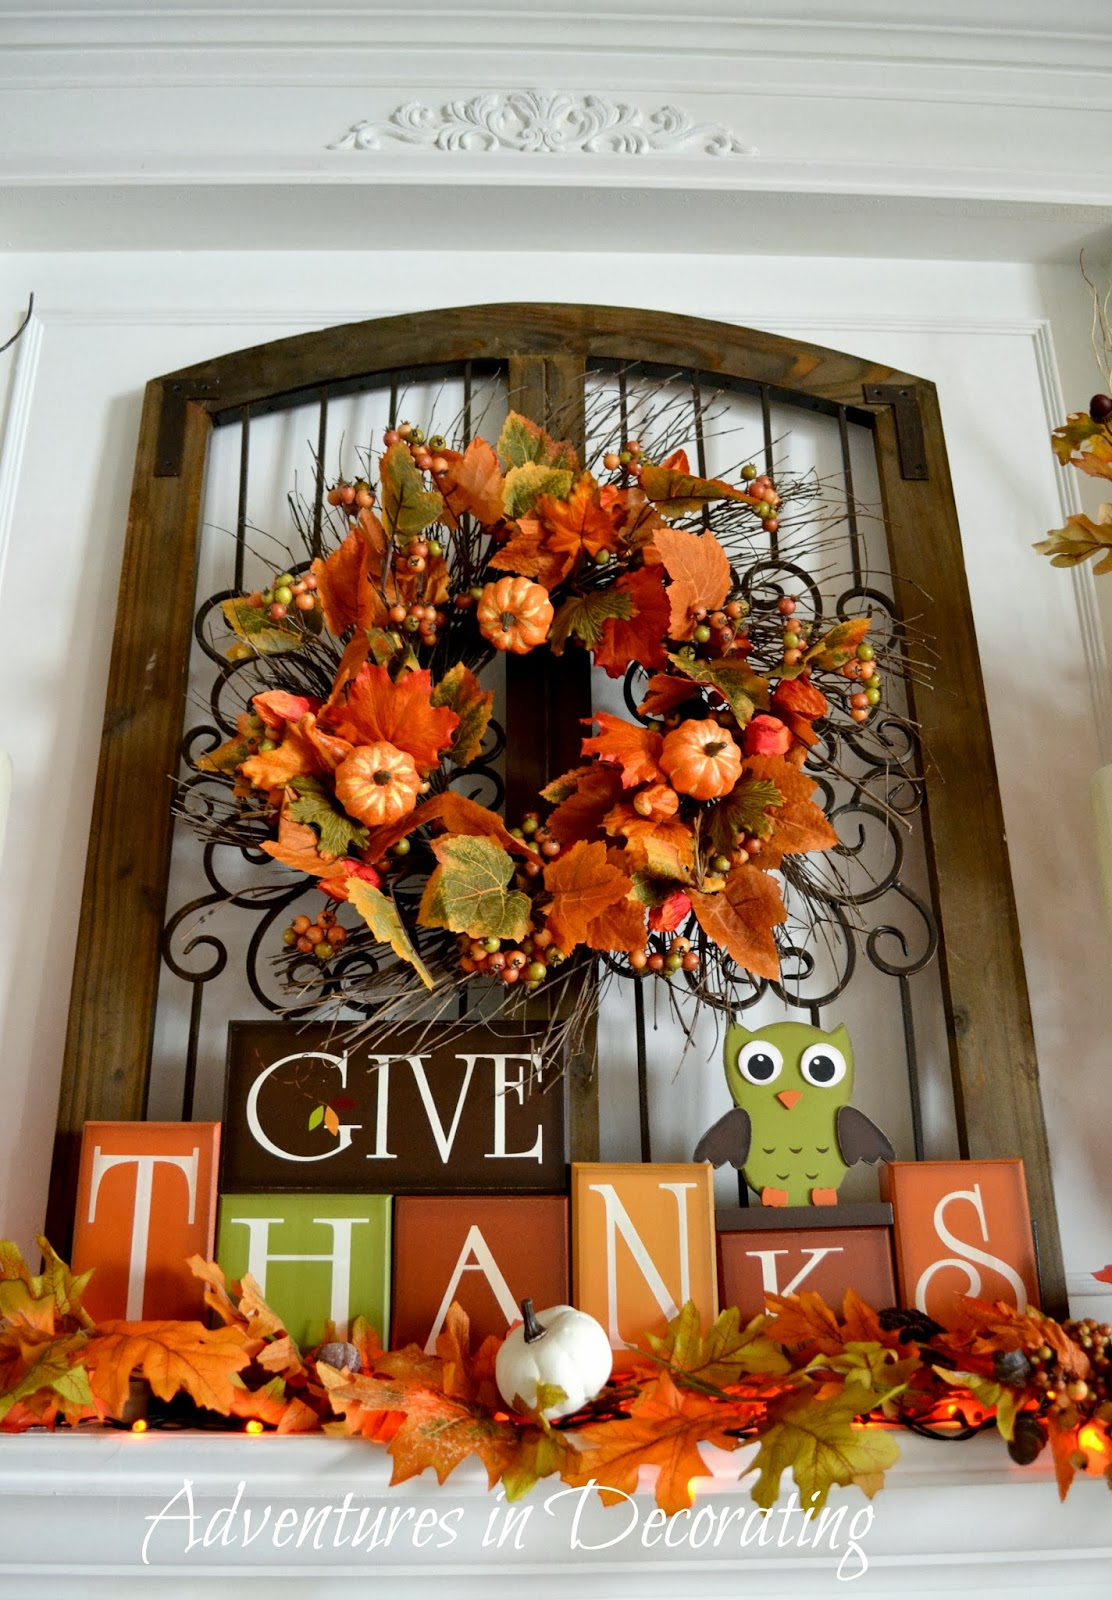 Adventures in decorating our fall mantel - Thanksgiving decorations ...